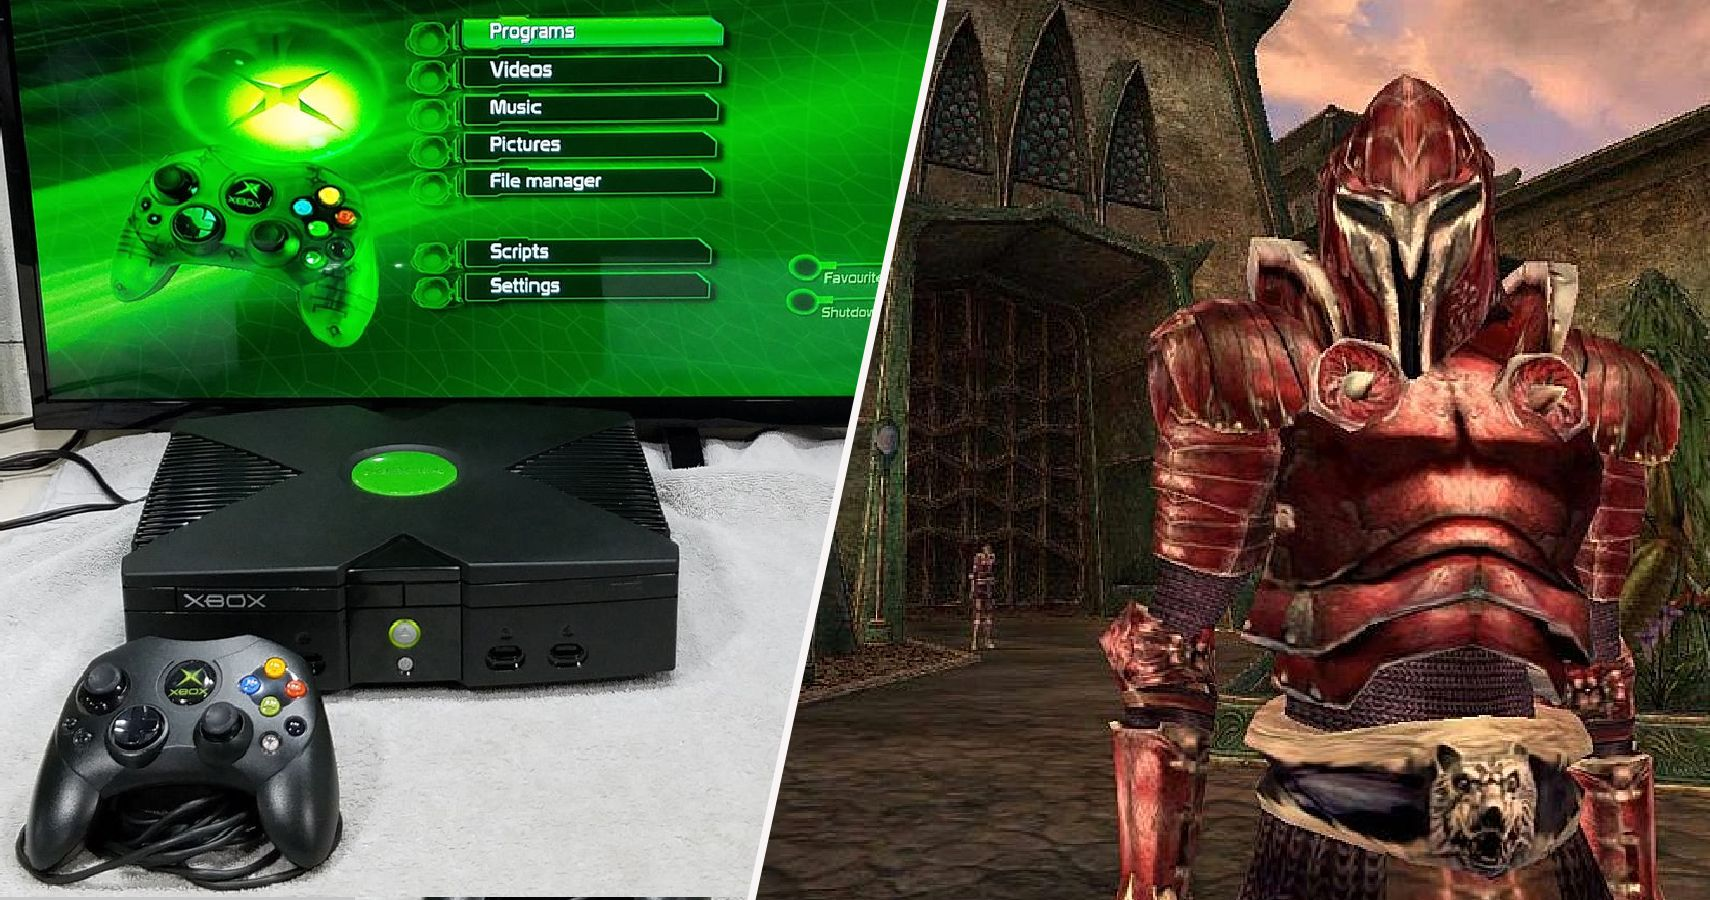 25 Things Only Superfans Knew The Original Xbox Could Do